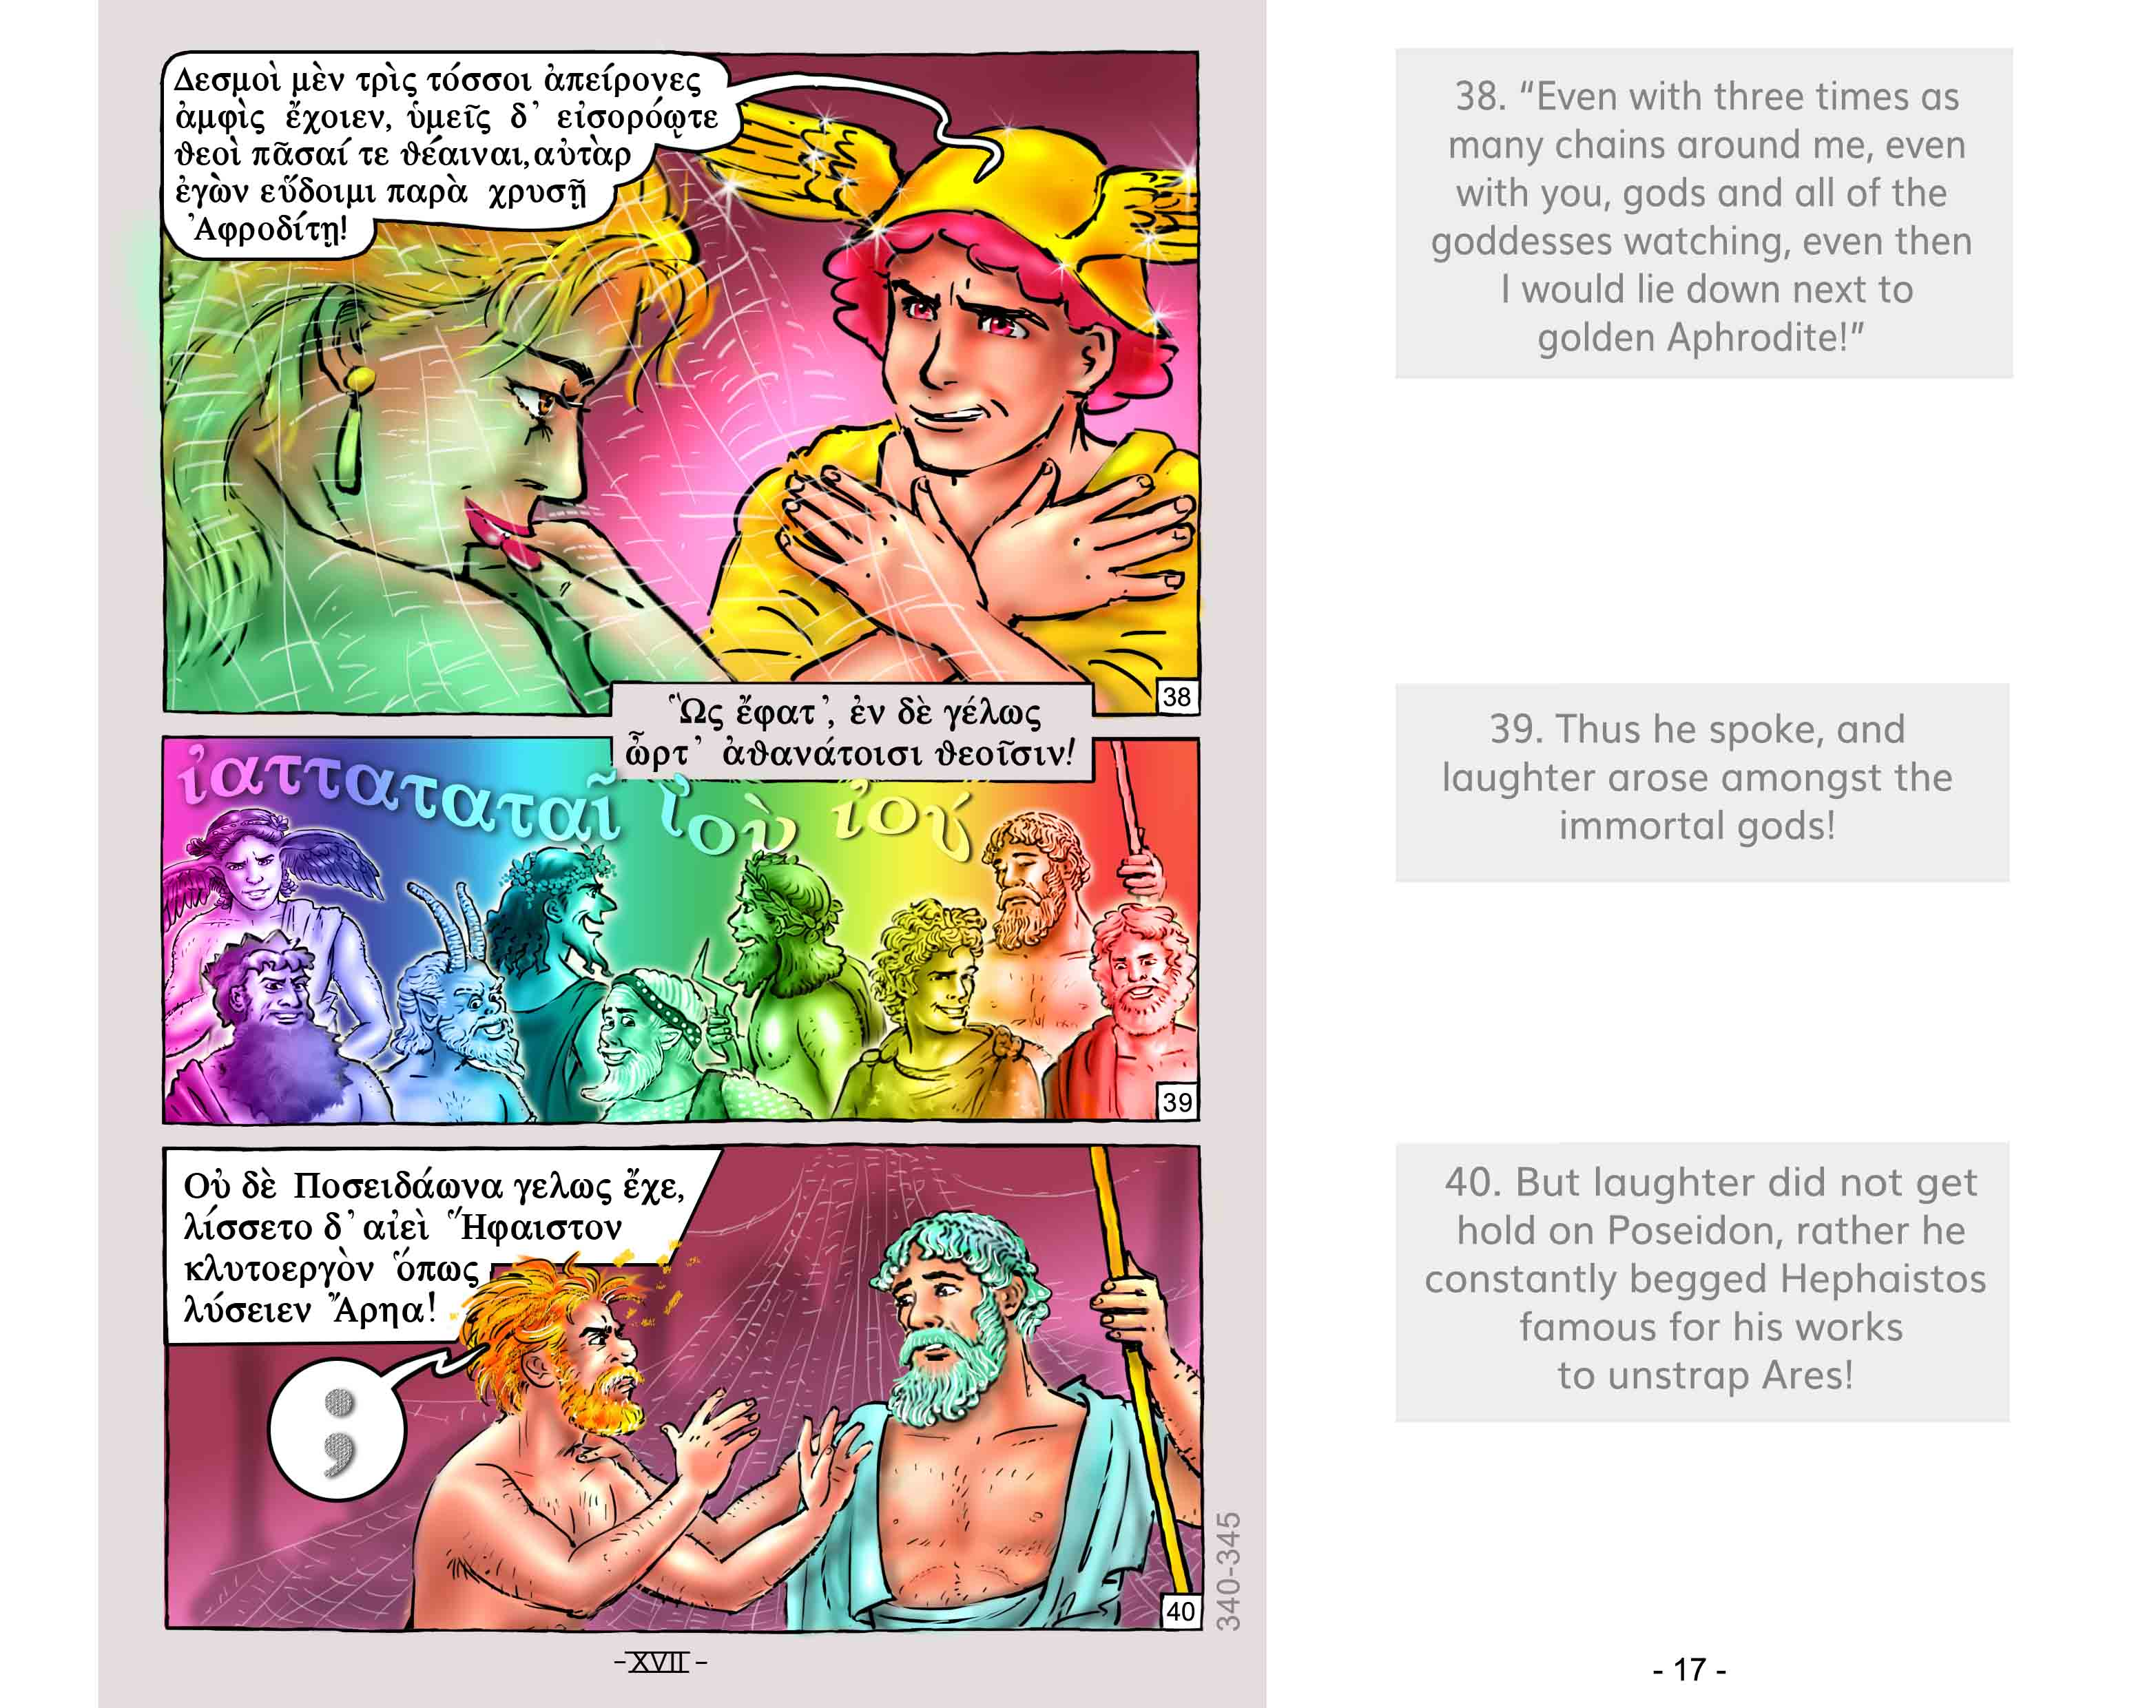 Ares and Aphrodite, love story in the Odyssey, romance in de Odyssee van Homeros, Homer adultery Ares and Aphrodite, graphic novel in original old Greek text with English translation